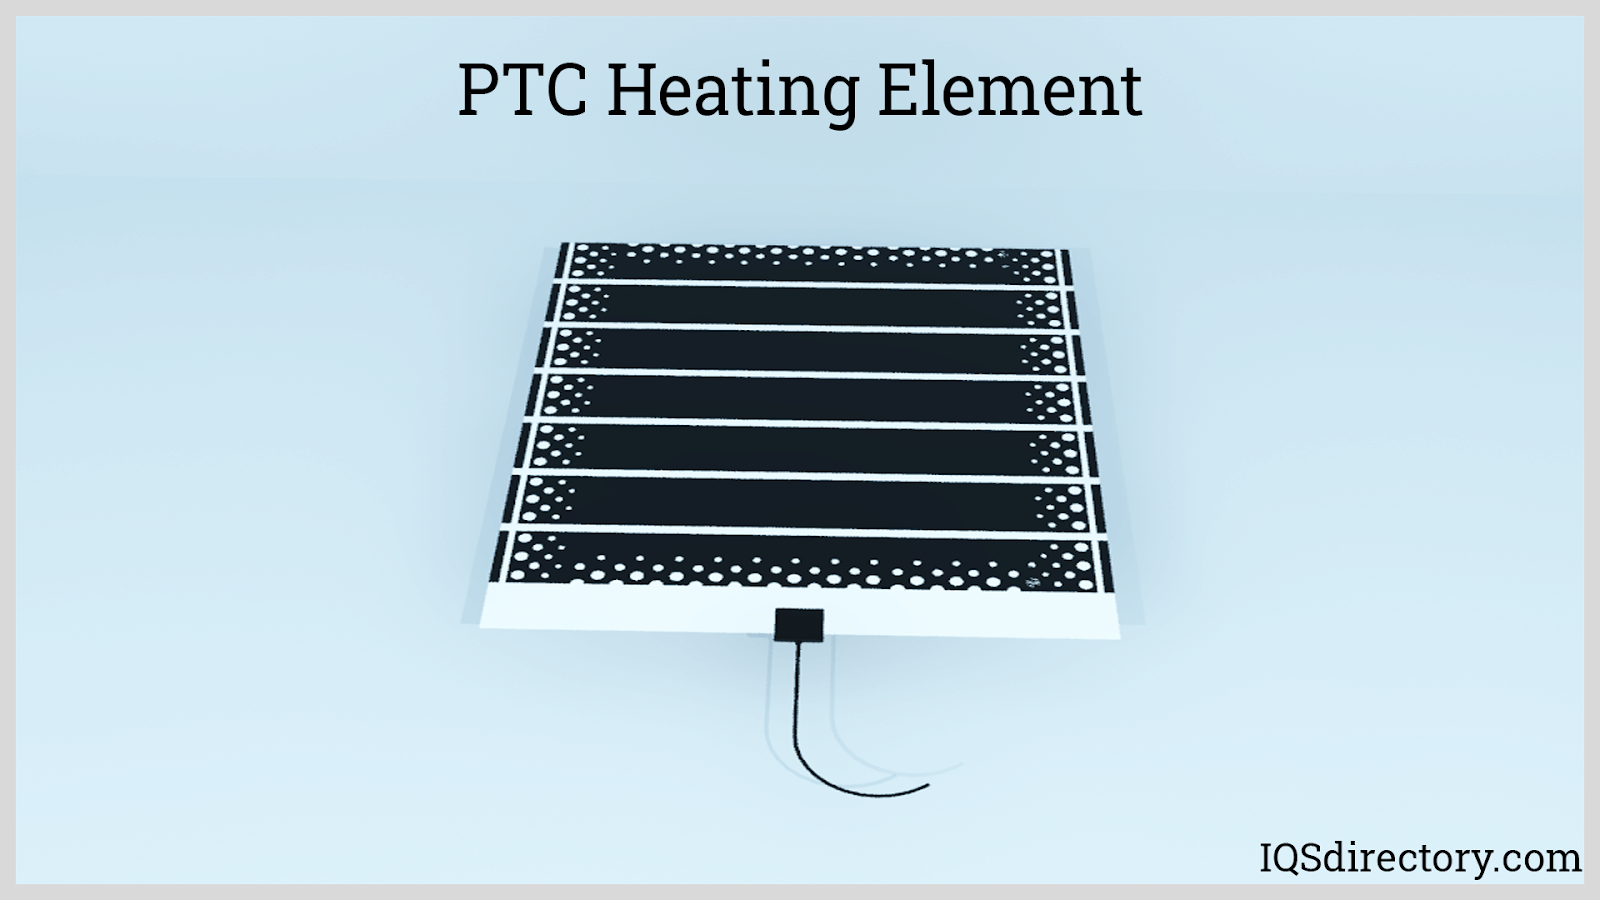 PTC Heating Element